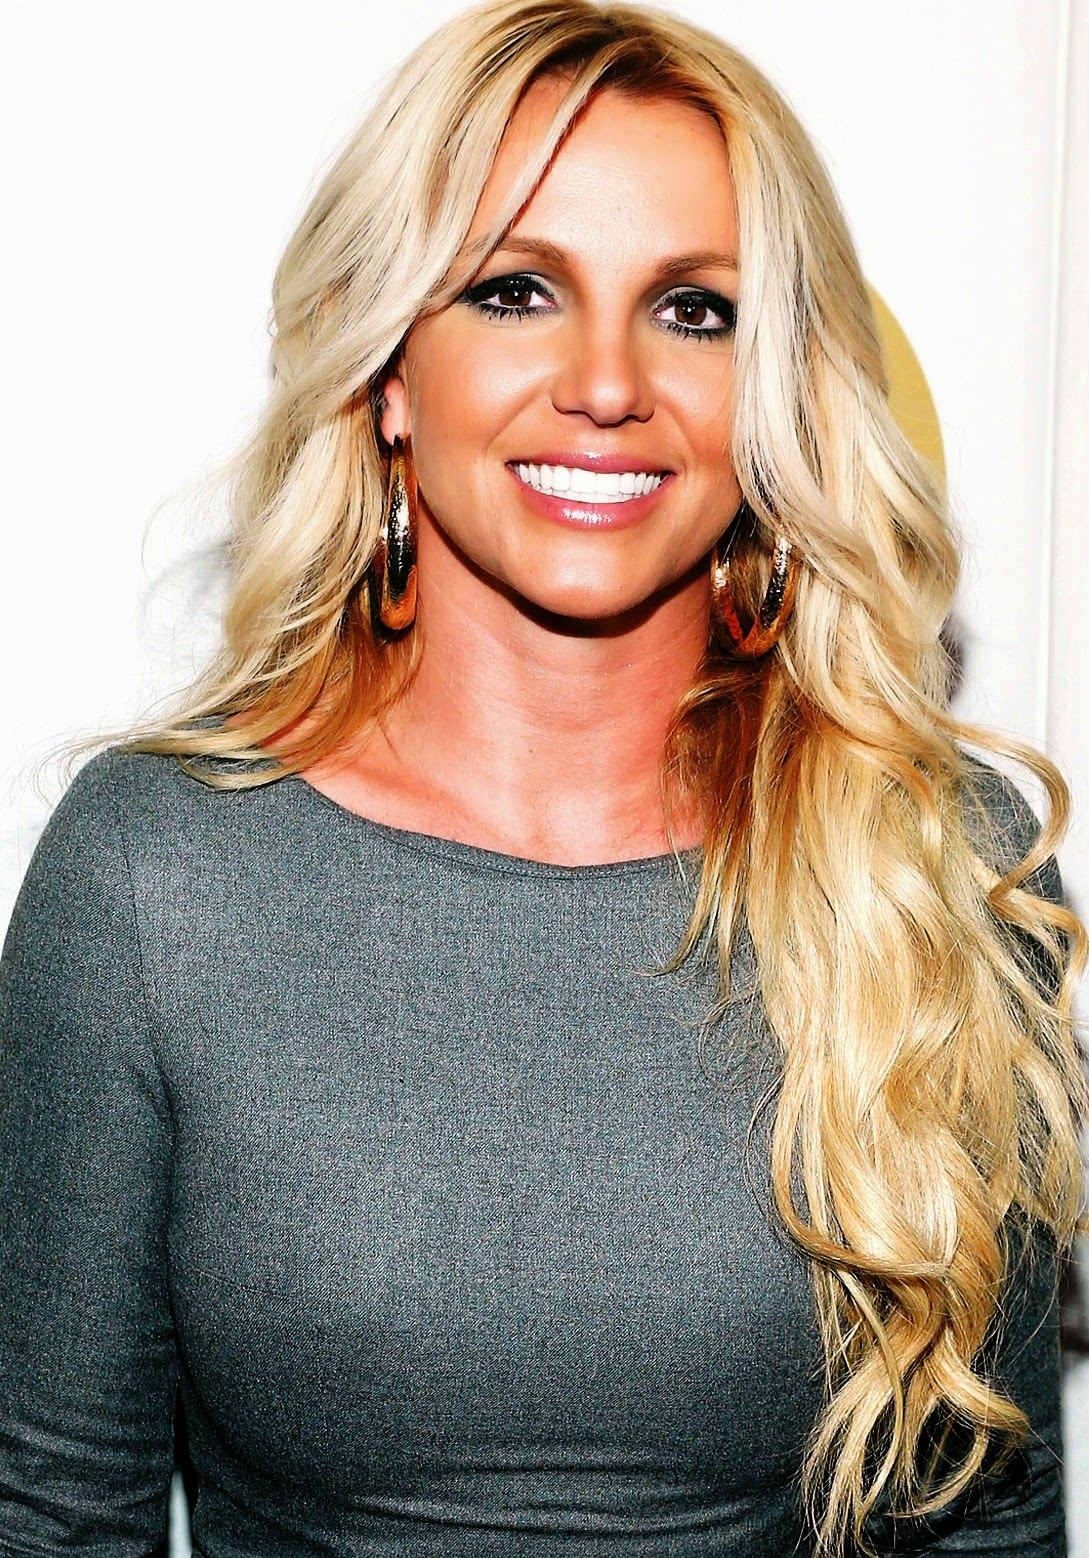 Child Wallpaper Hd Celebrity Biography And Photos Britney Spears